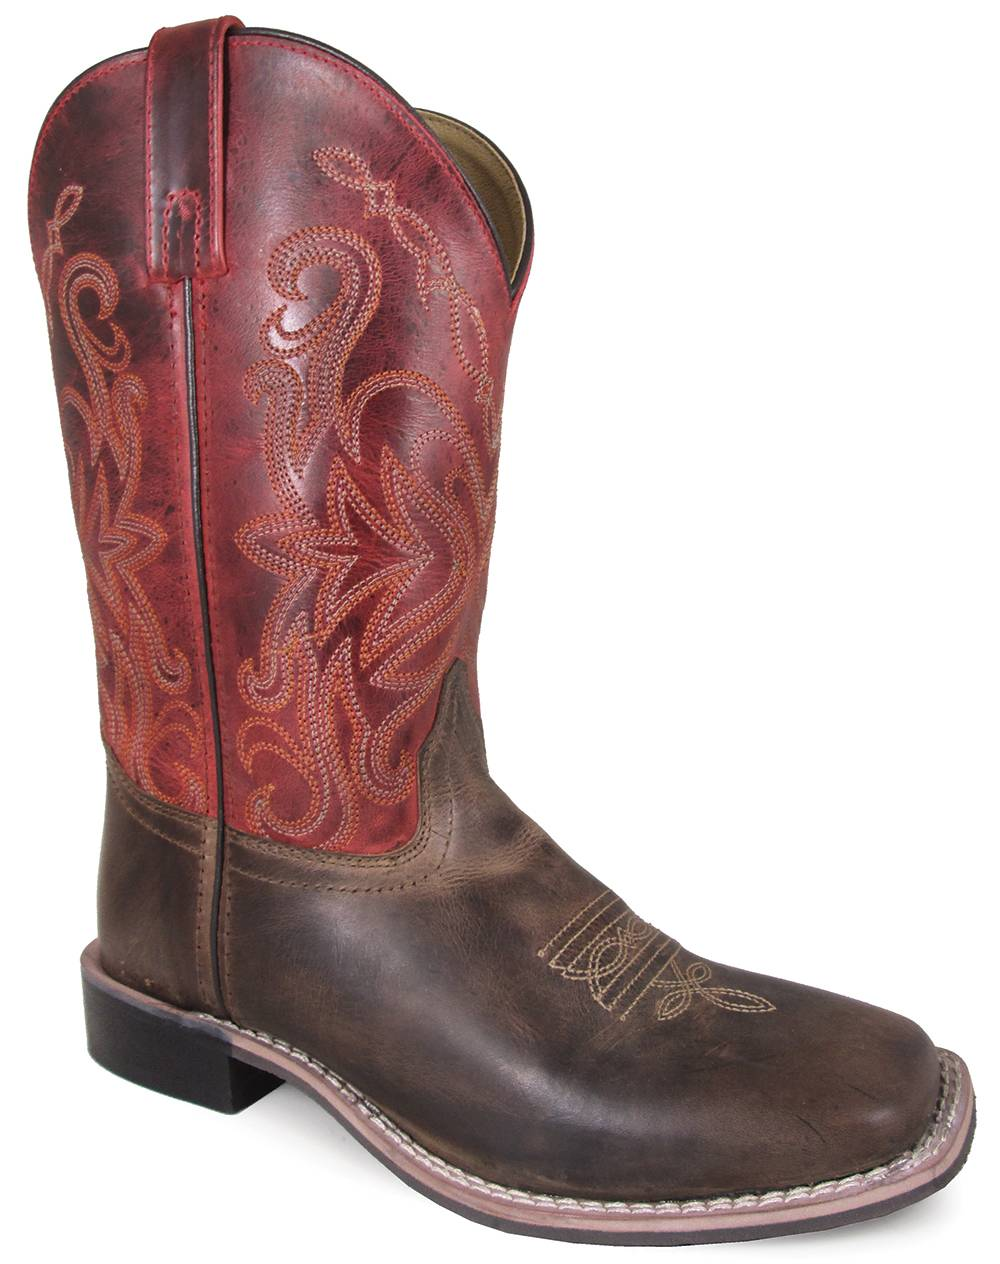 Smoky Mountain Ladies Delta 10'' Leather Square Toe Boot - Brown/Red Crackle